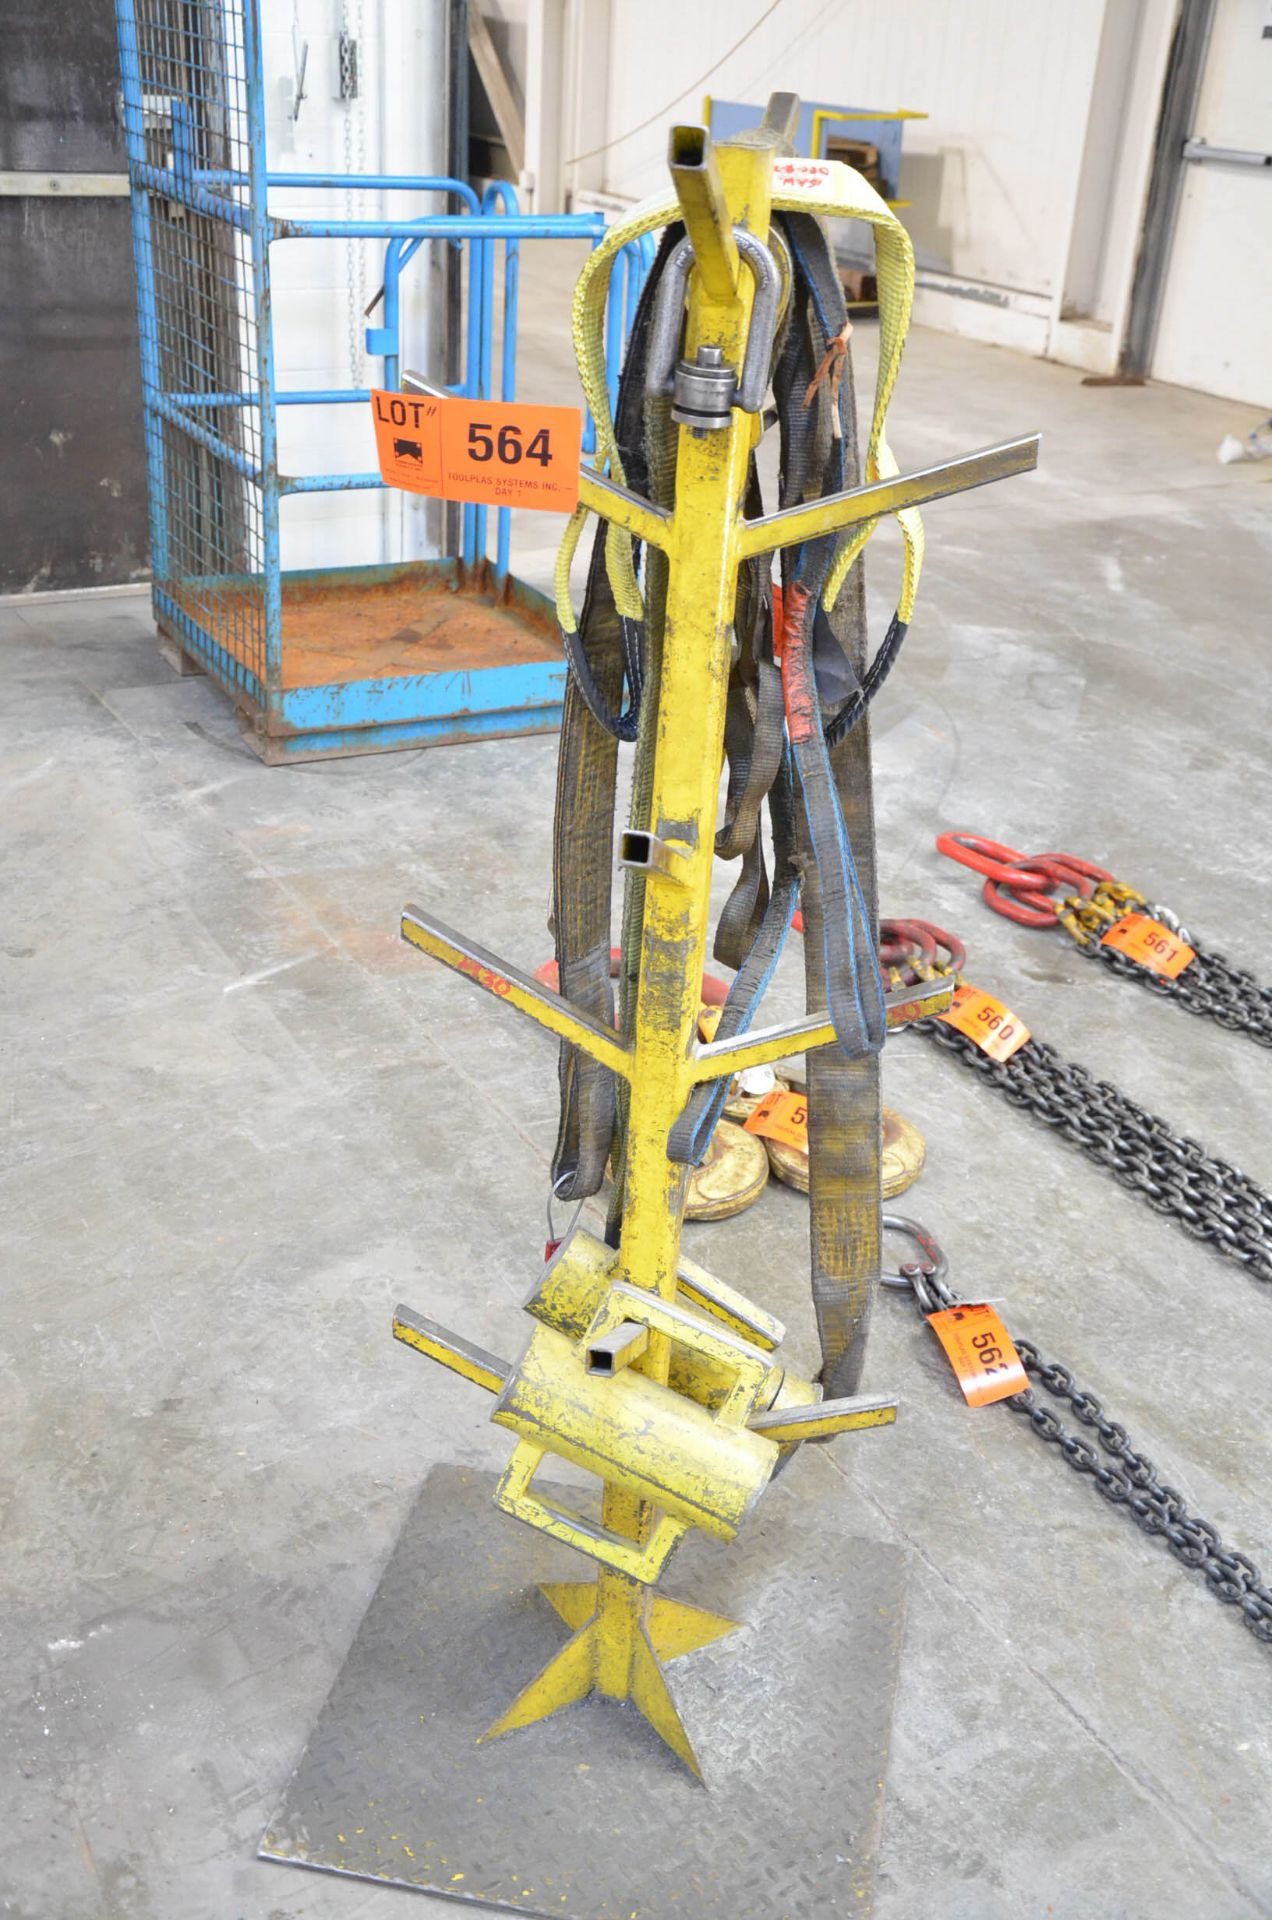 LOT/ RIGGING STORAGE TREE WITH SLINGS